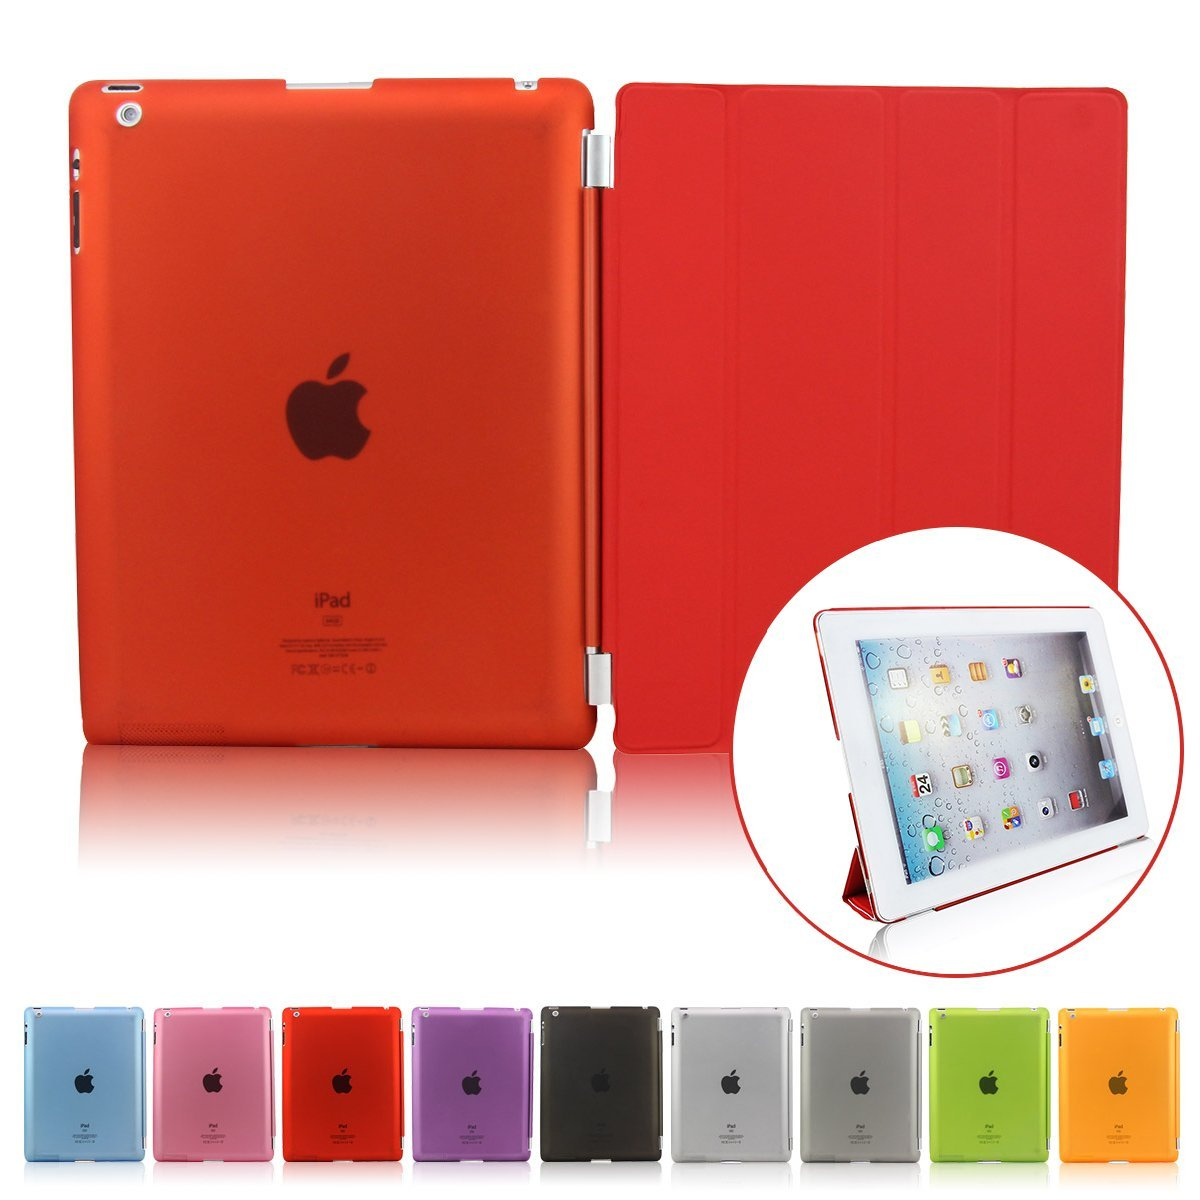 Case For iPad 2 3 4 / iPad Mini 1 2 3 Slim Magnetic PU Leather Smart Cover + Detachable PC Hard Back Auto Wake for iPad 4 Case nice soft silicone back magnetic smart pu leather case for apple 2017 ipad air 1 cover new slim thin flip tpu protective case